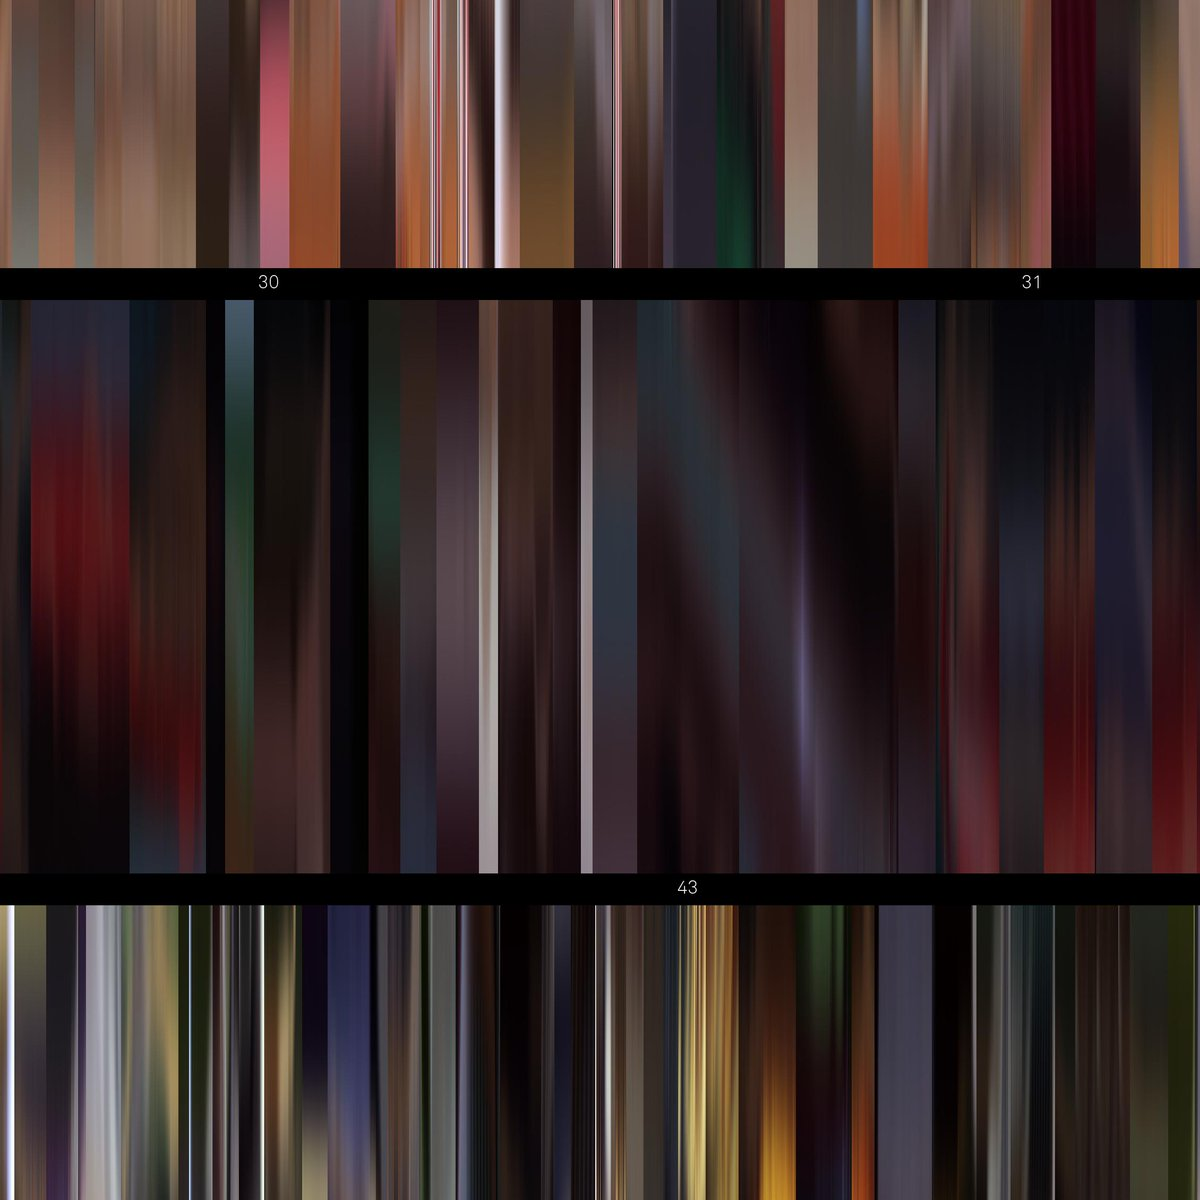 Poster (detail) of #Akira (#KatsuhiroÔtomo, 1988), around the 43 mn mark. Rendered as a juxtaposition of vertical lines summarizing the colors of each frame, hence displaying cuts & moods of the film #MitsuoIwata #NozomuSasaki #MamiKoyama #TesshôGenda #HiroshiÔtakepic.twitter.com/OSRrTy0EC9